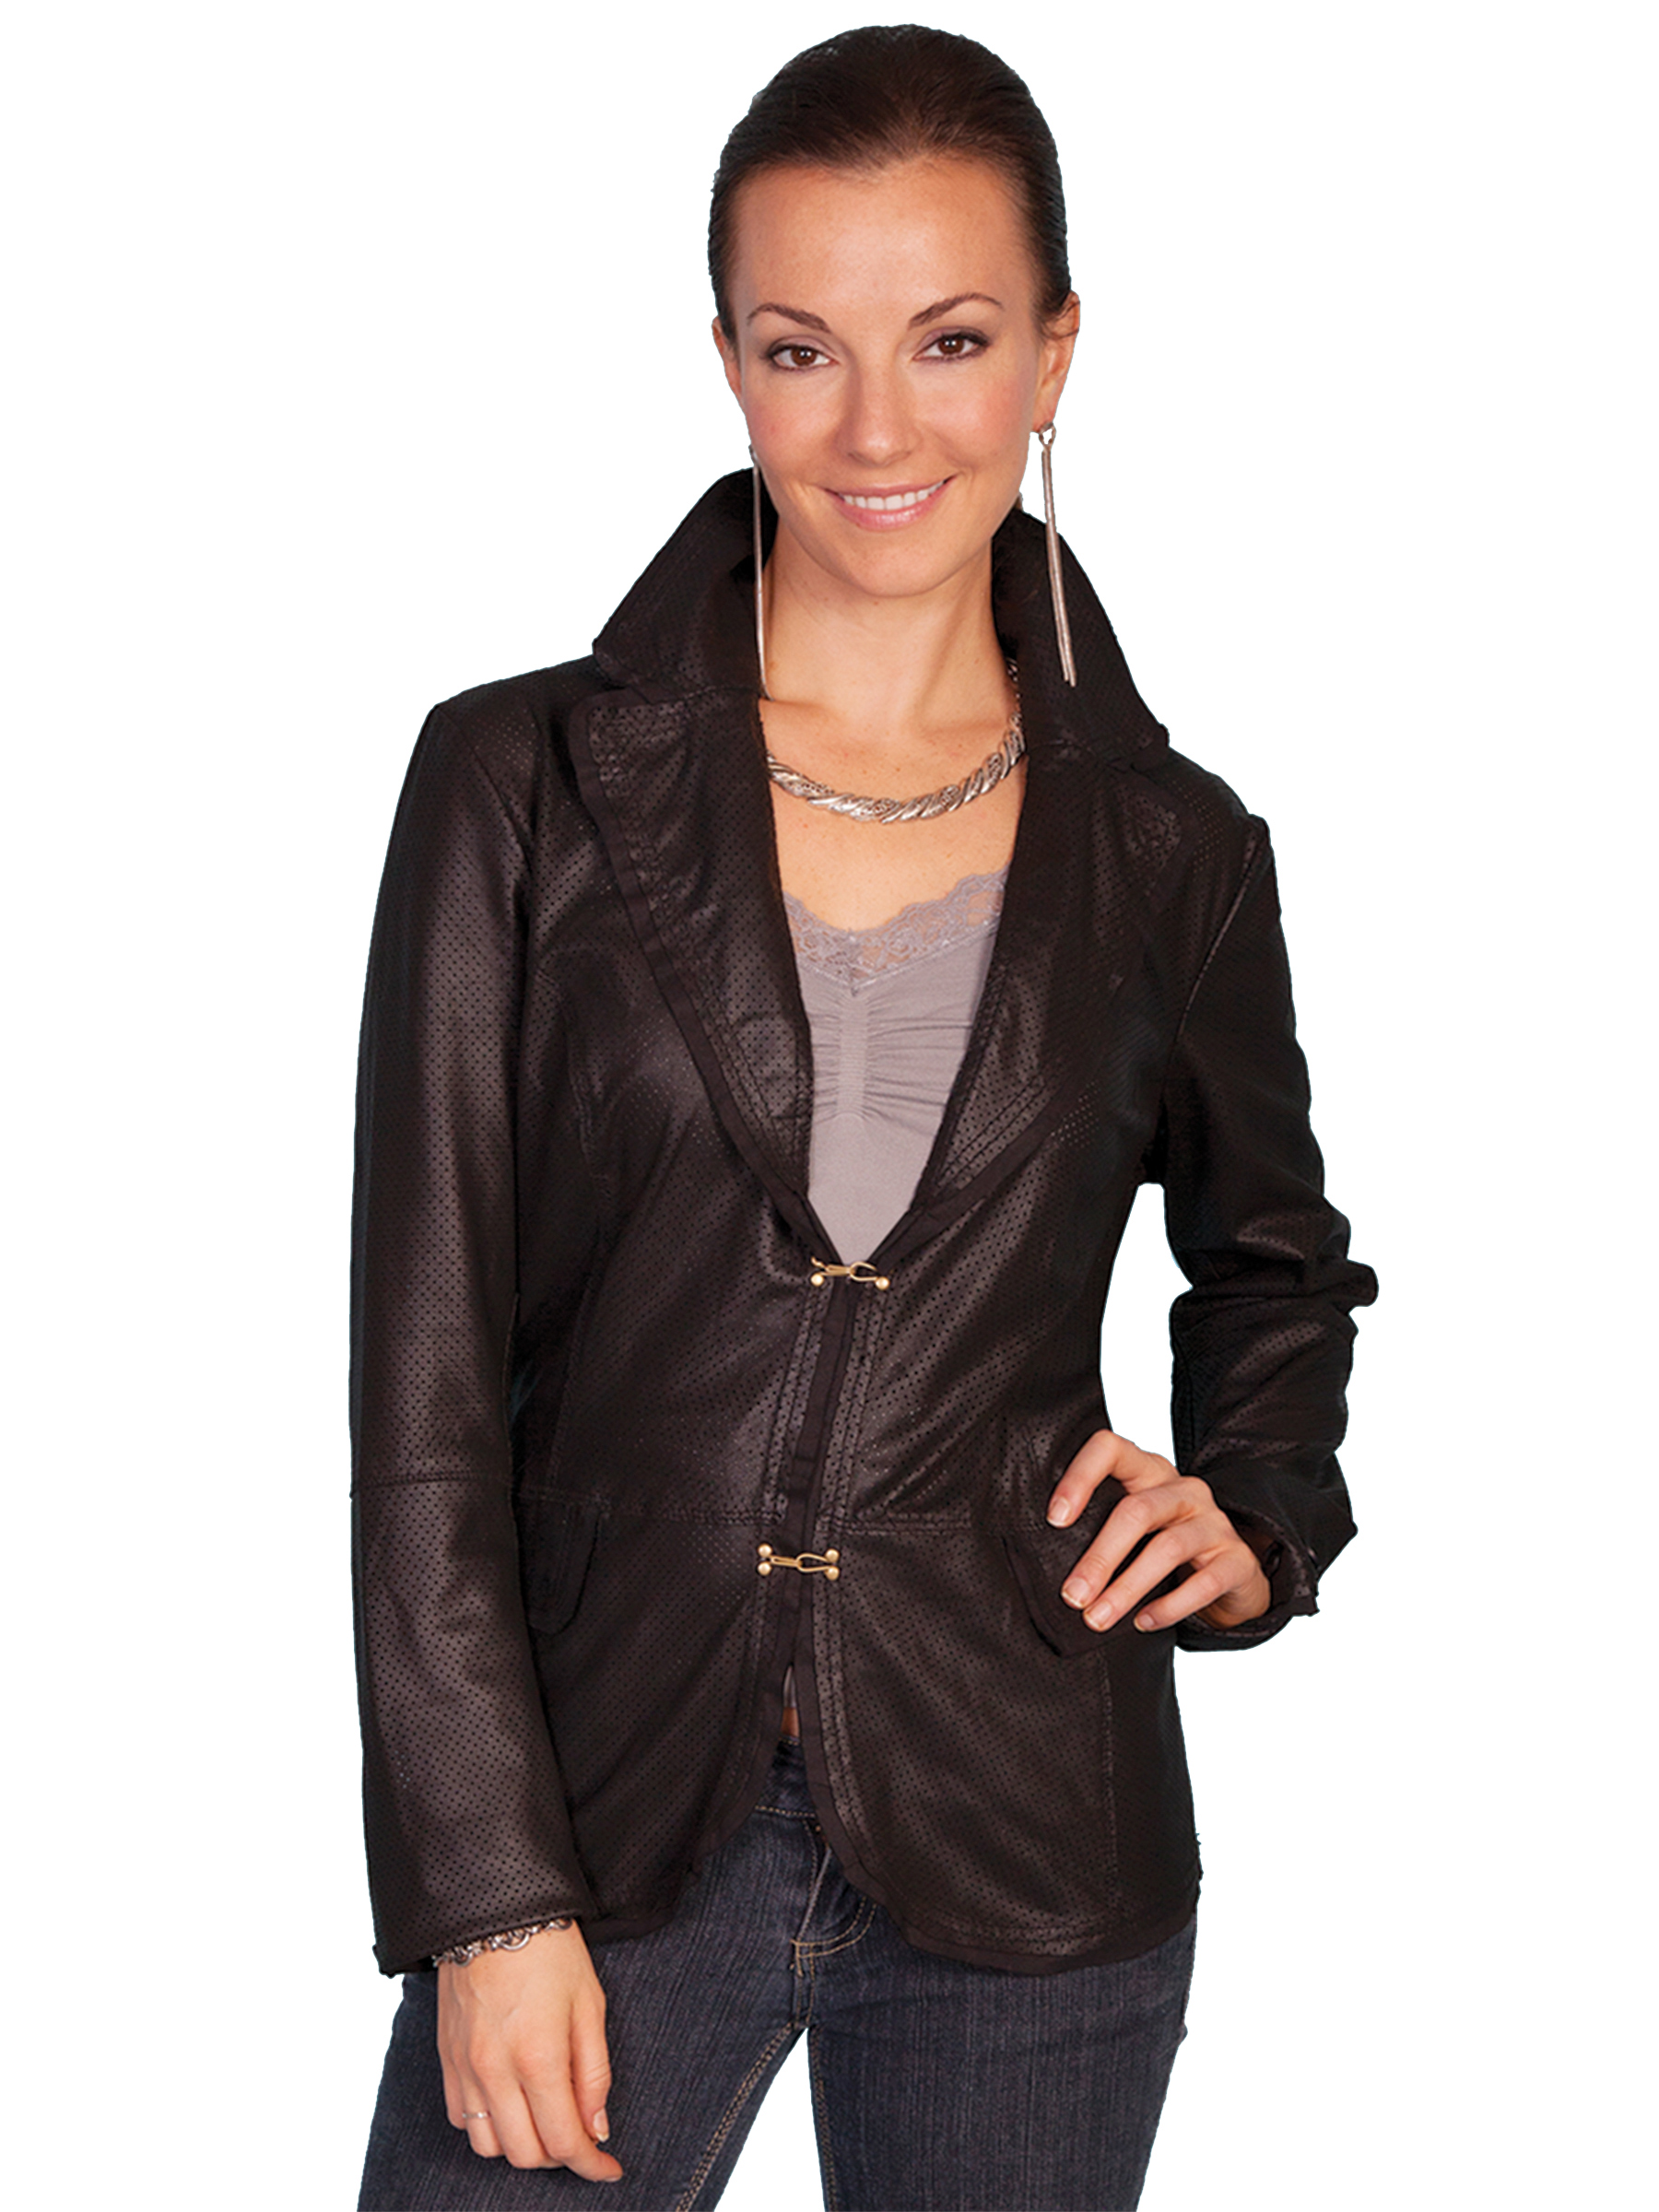 Featherlite premium perforated leather jacket